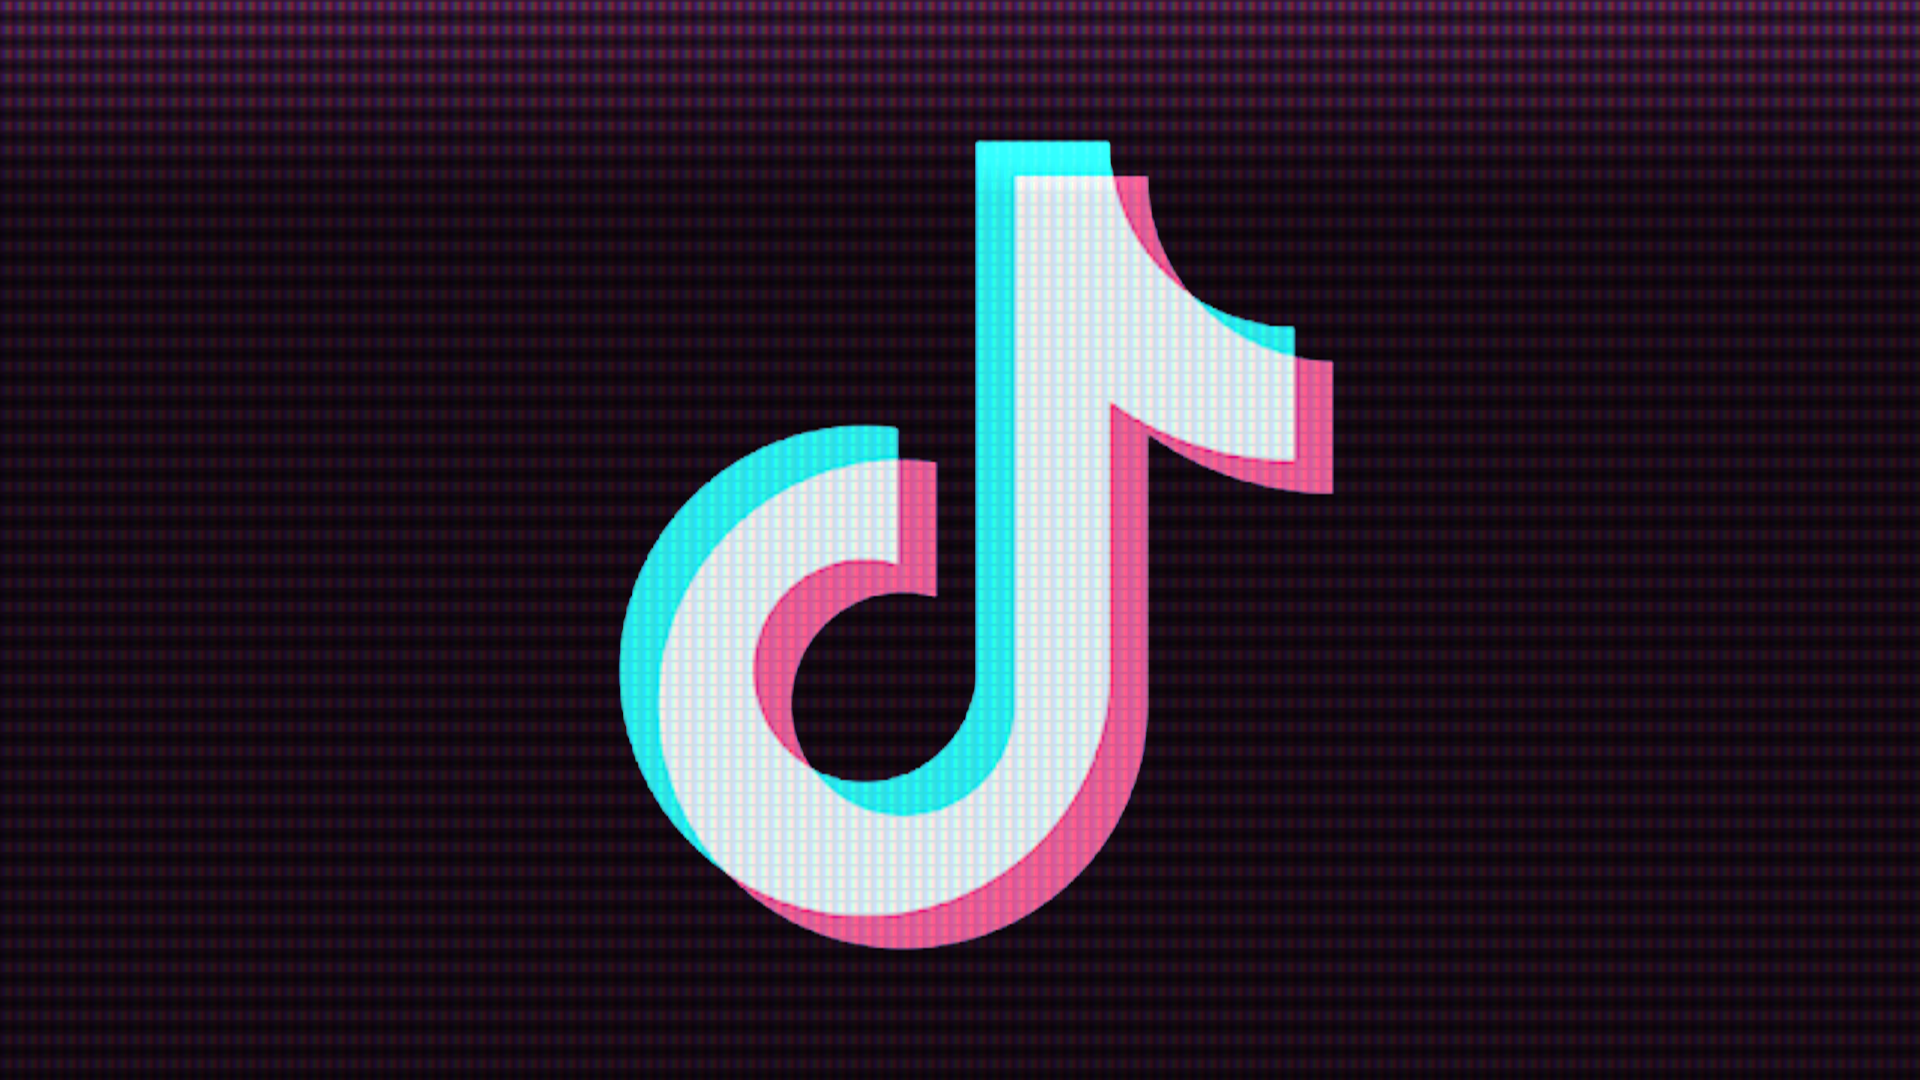 USA  opens national security probe of Chinese-owned app TikTok